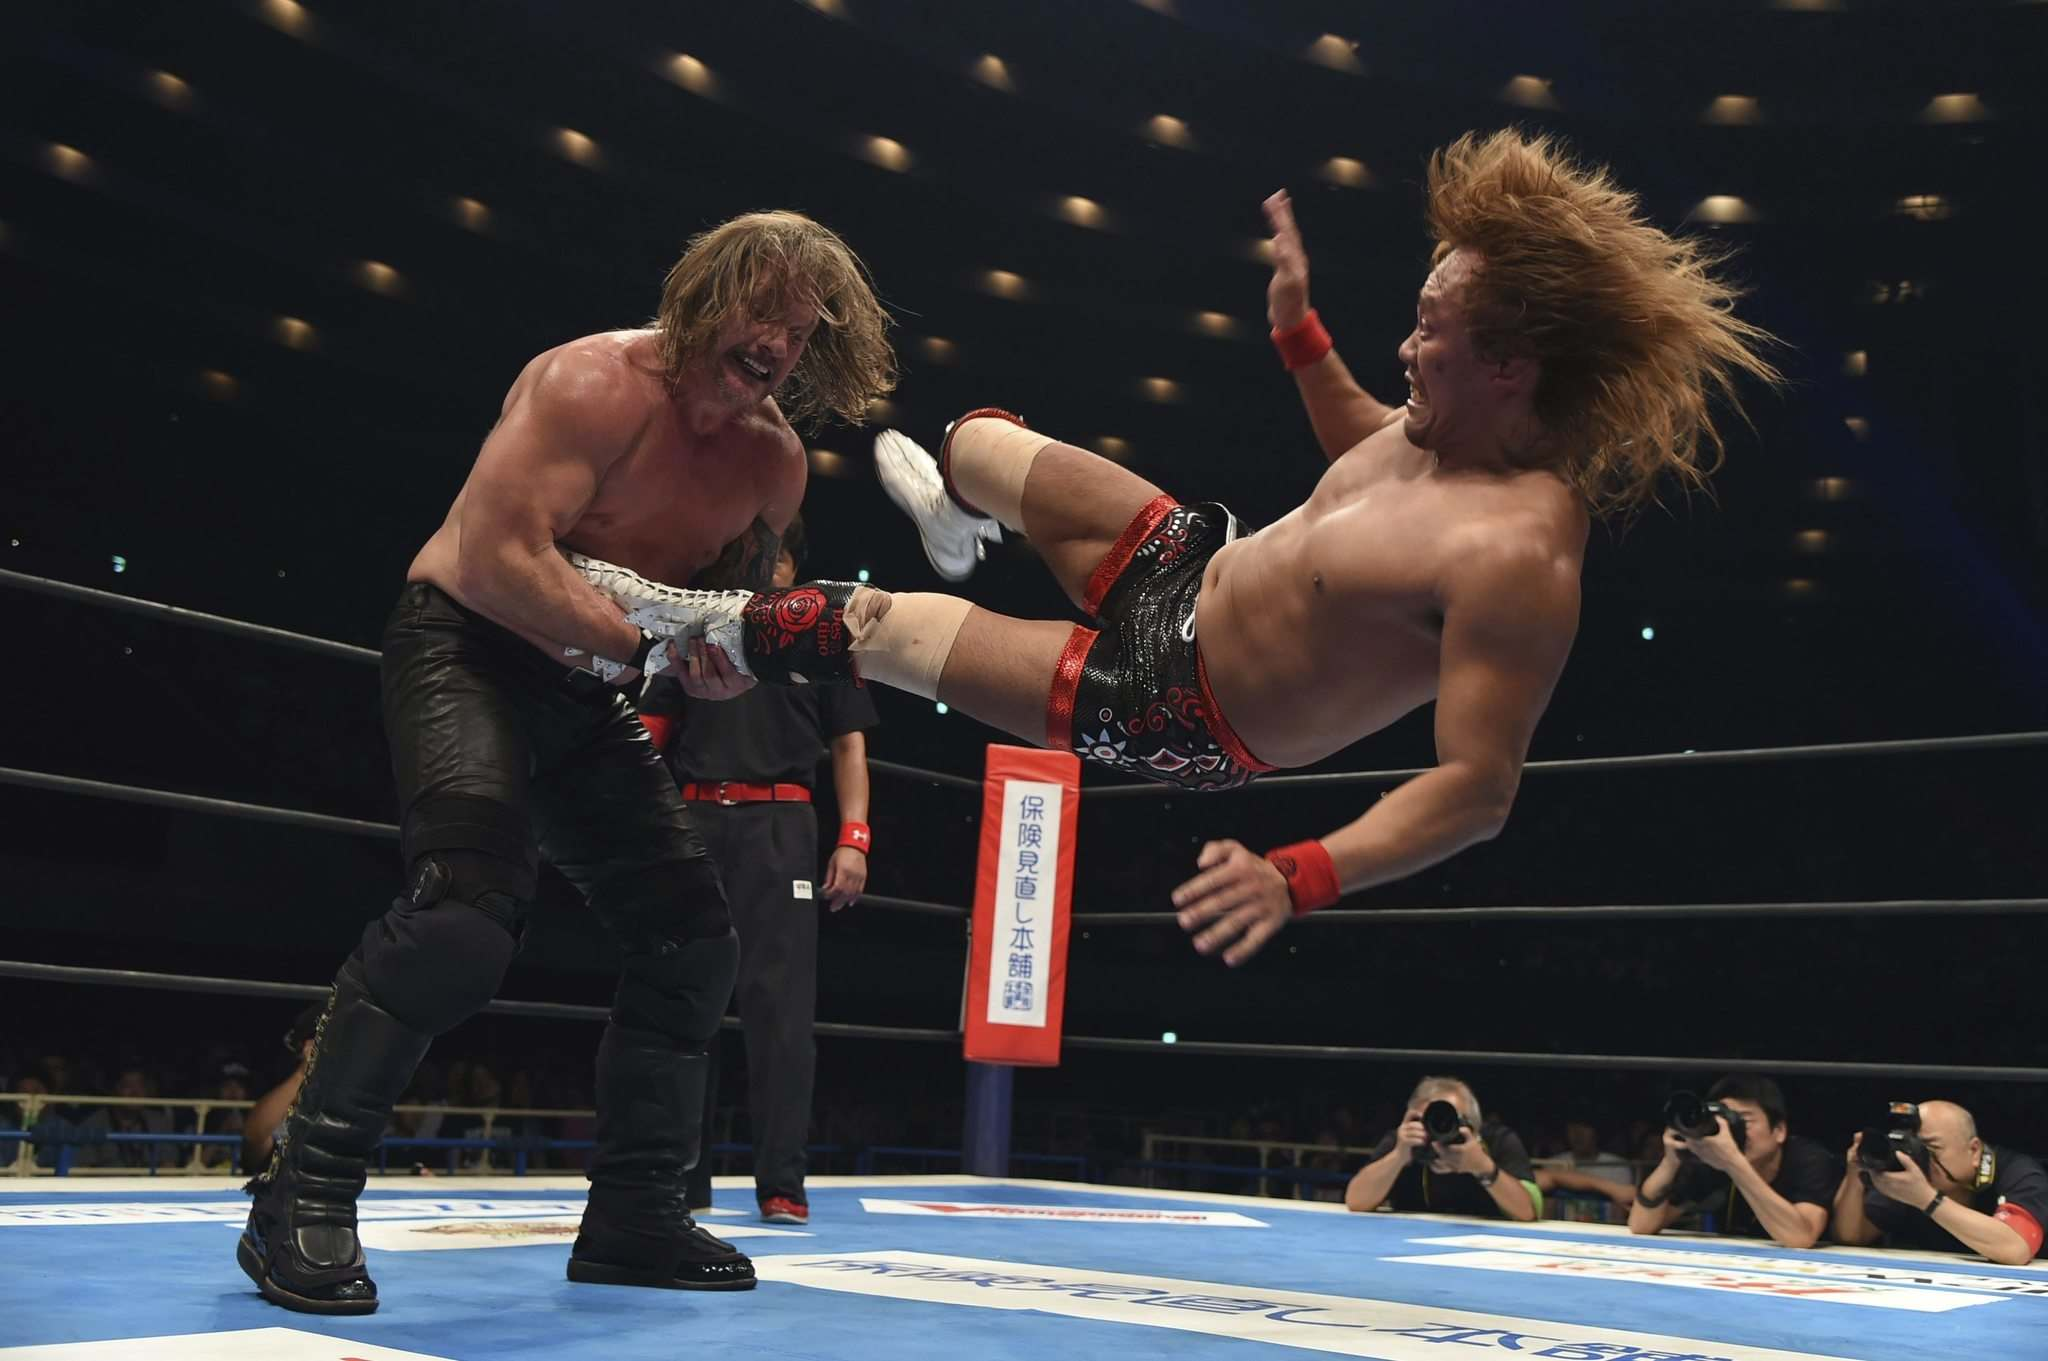 Chris Jericho made his return to Japanese wrestling this year and claimed the second-most prestigious prize in NJPW after defeating Tetsuya Naito to win the IWGP intercontinental championship. (TV ASAHI NJPW, AXS TV)</p>